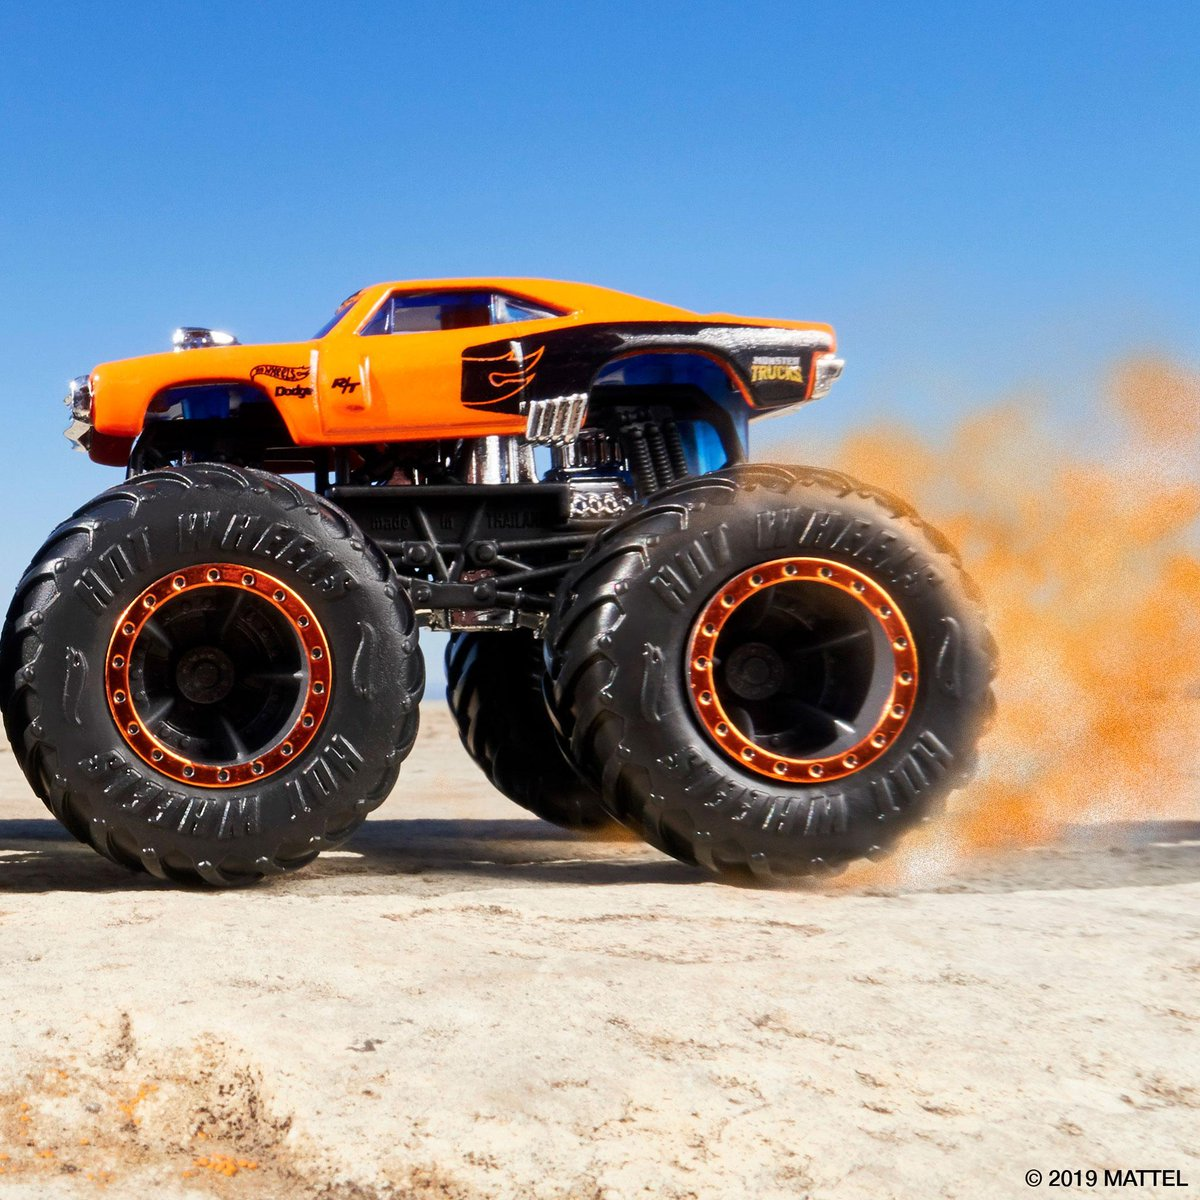 Hot Wheels On Twitter Rodger Dodger Vs Dodge Charger R T Comment Or To Tell Us What Side You Re On In This Epic Face Off Https T Co 8zmizbhola Hotwheelsmonstertrucks Https T Co Aozpkvmyil